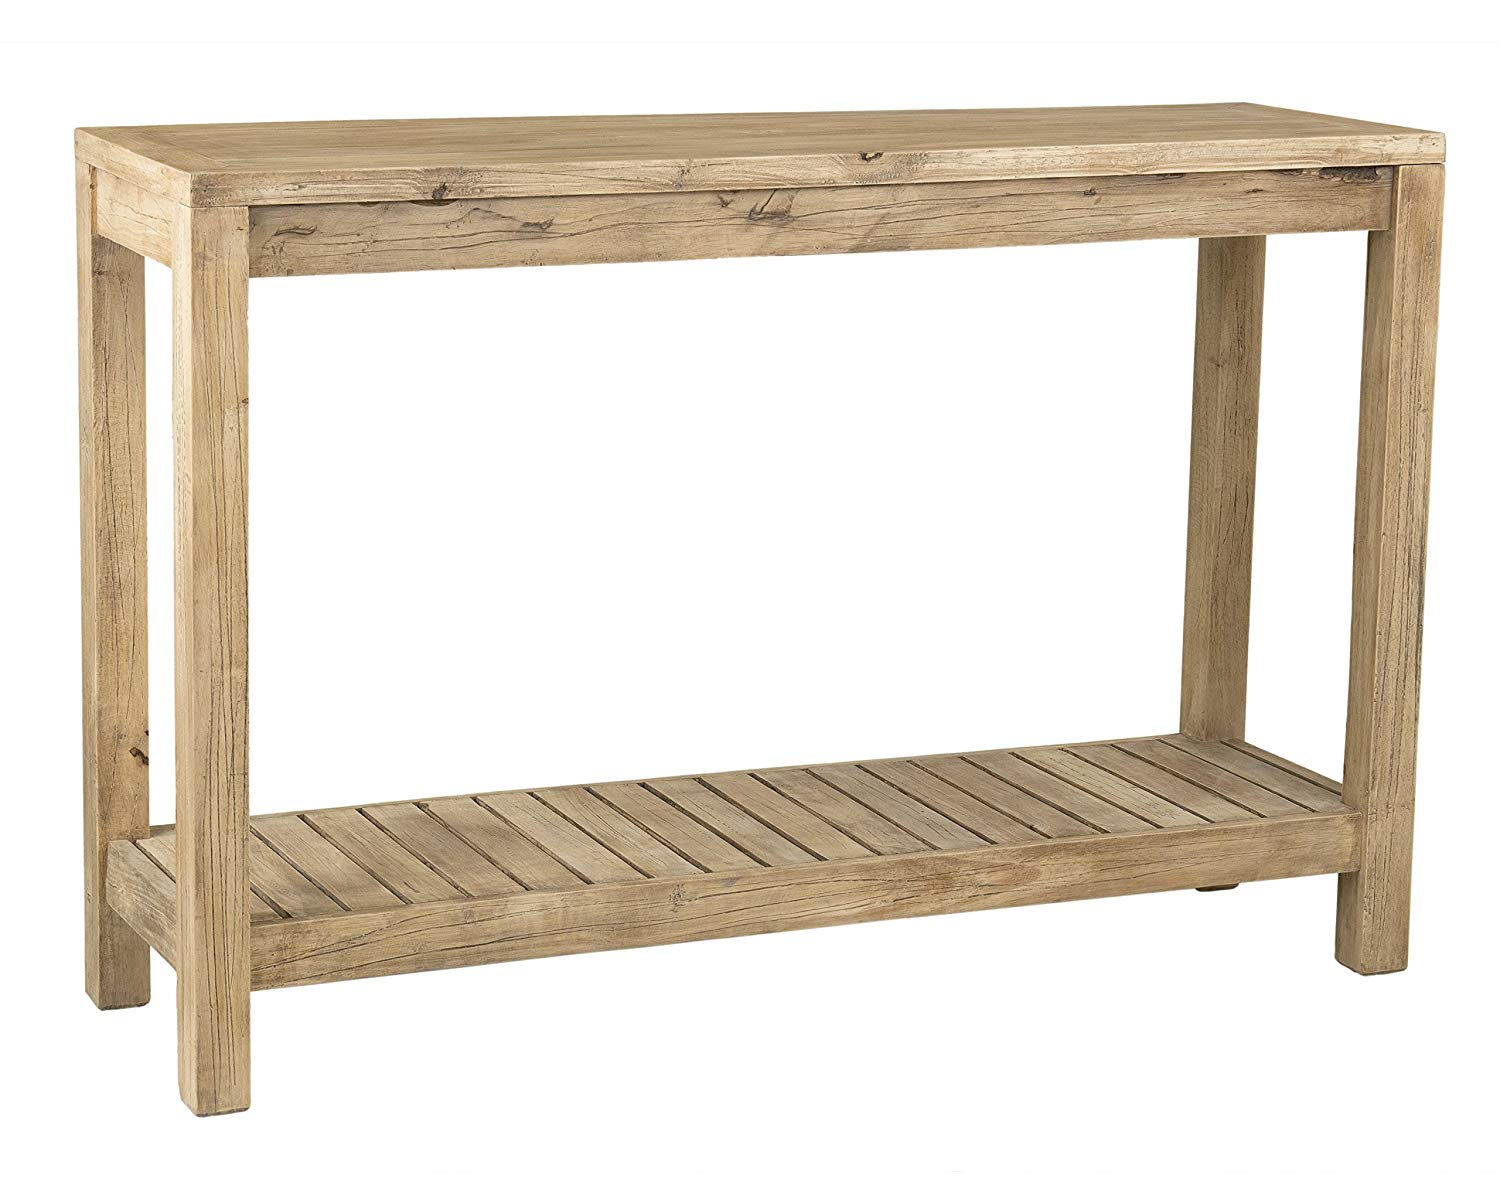 east main quincy brown rectangular rubber wood monarch hall console accent table dark taupe kitchen dining round hairpin coffee inch autumn runner west elm room lighting bar